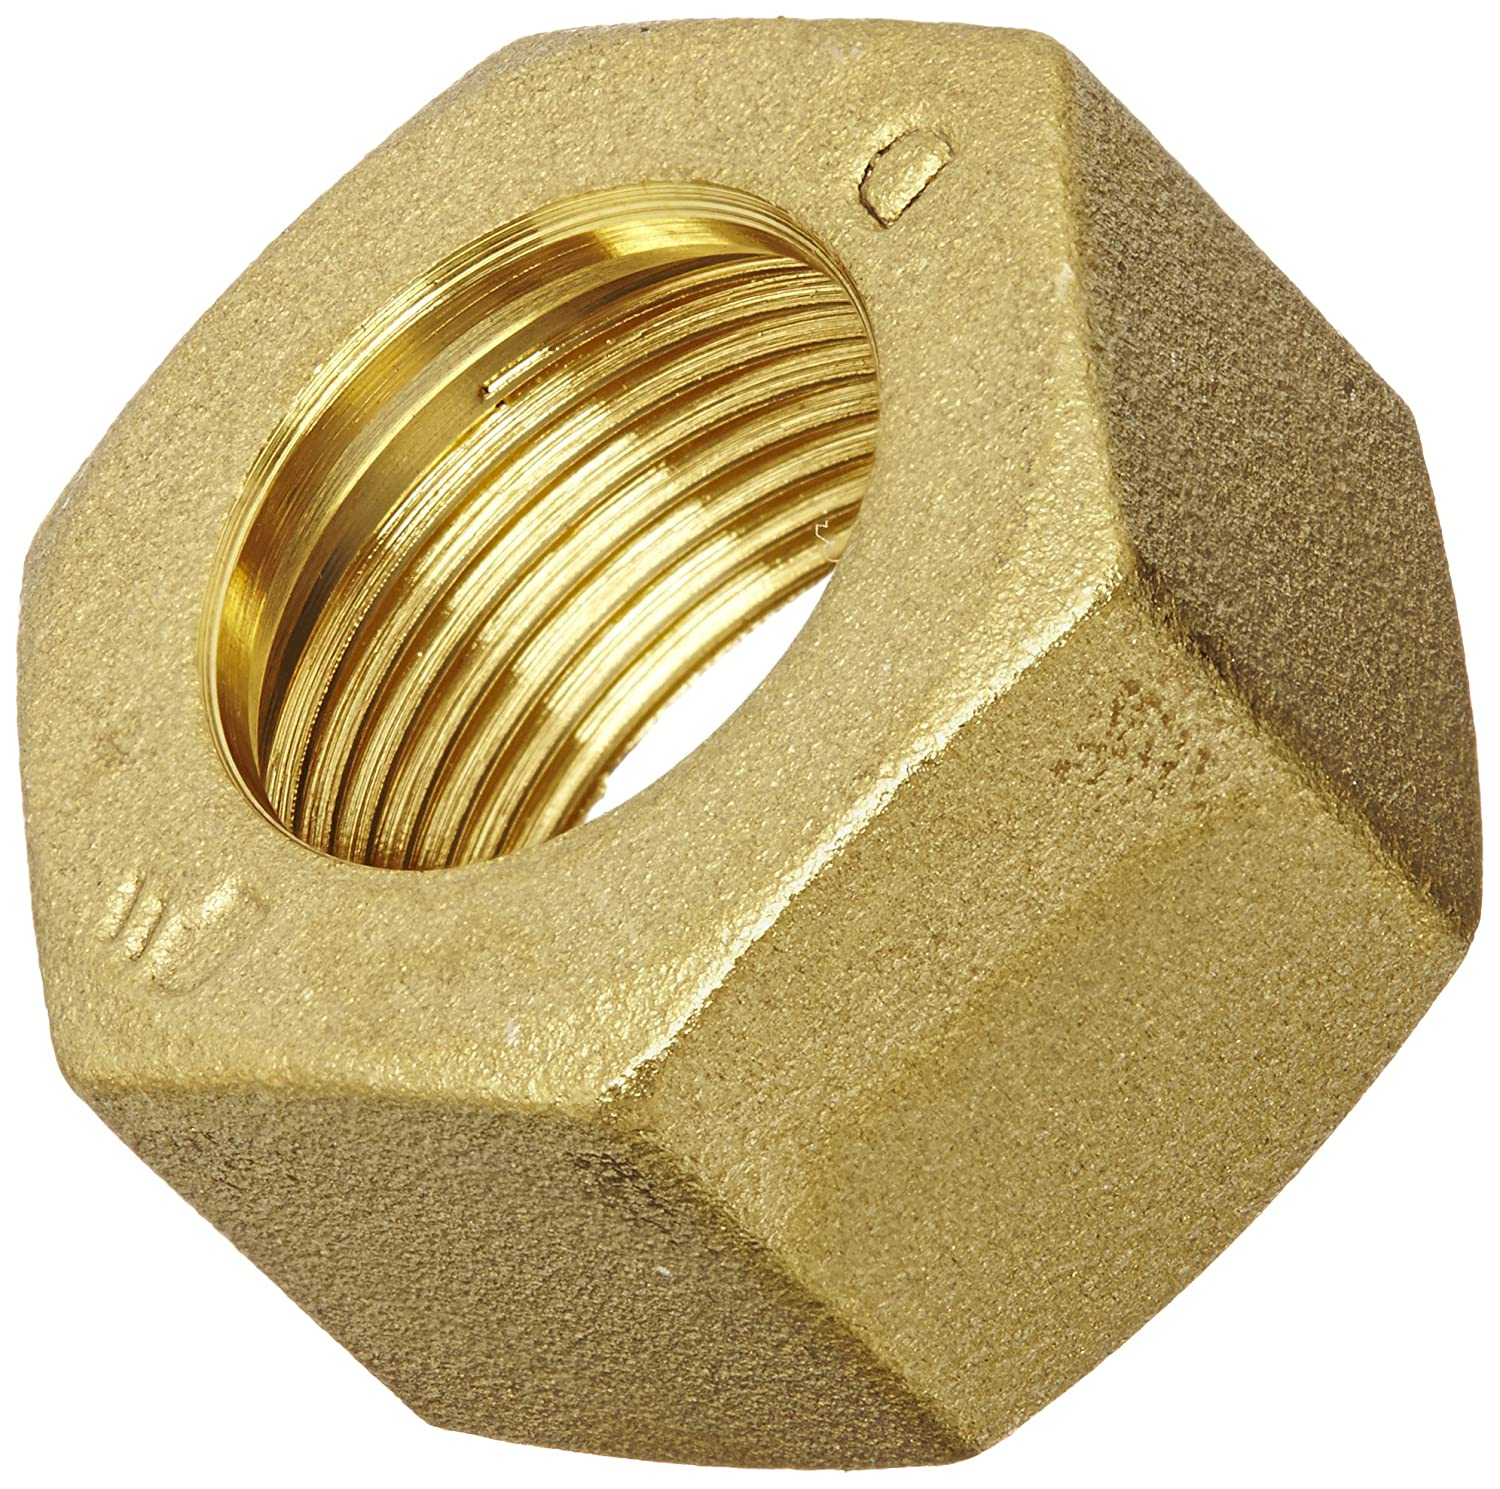 Legris 0110 06 00 Brass Max 90% OFF Compression Tube mm Fitting Product Nut For